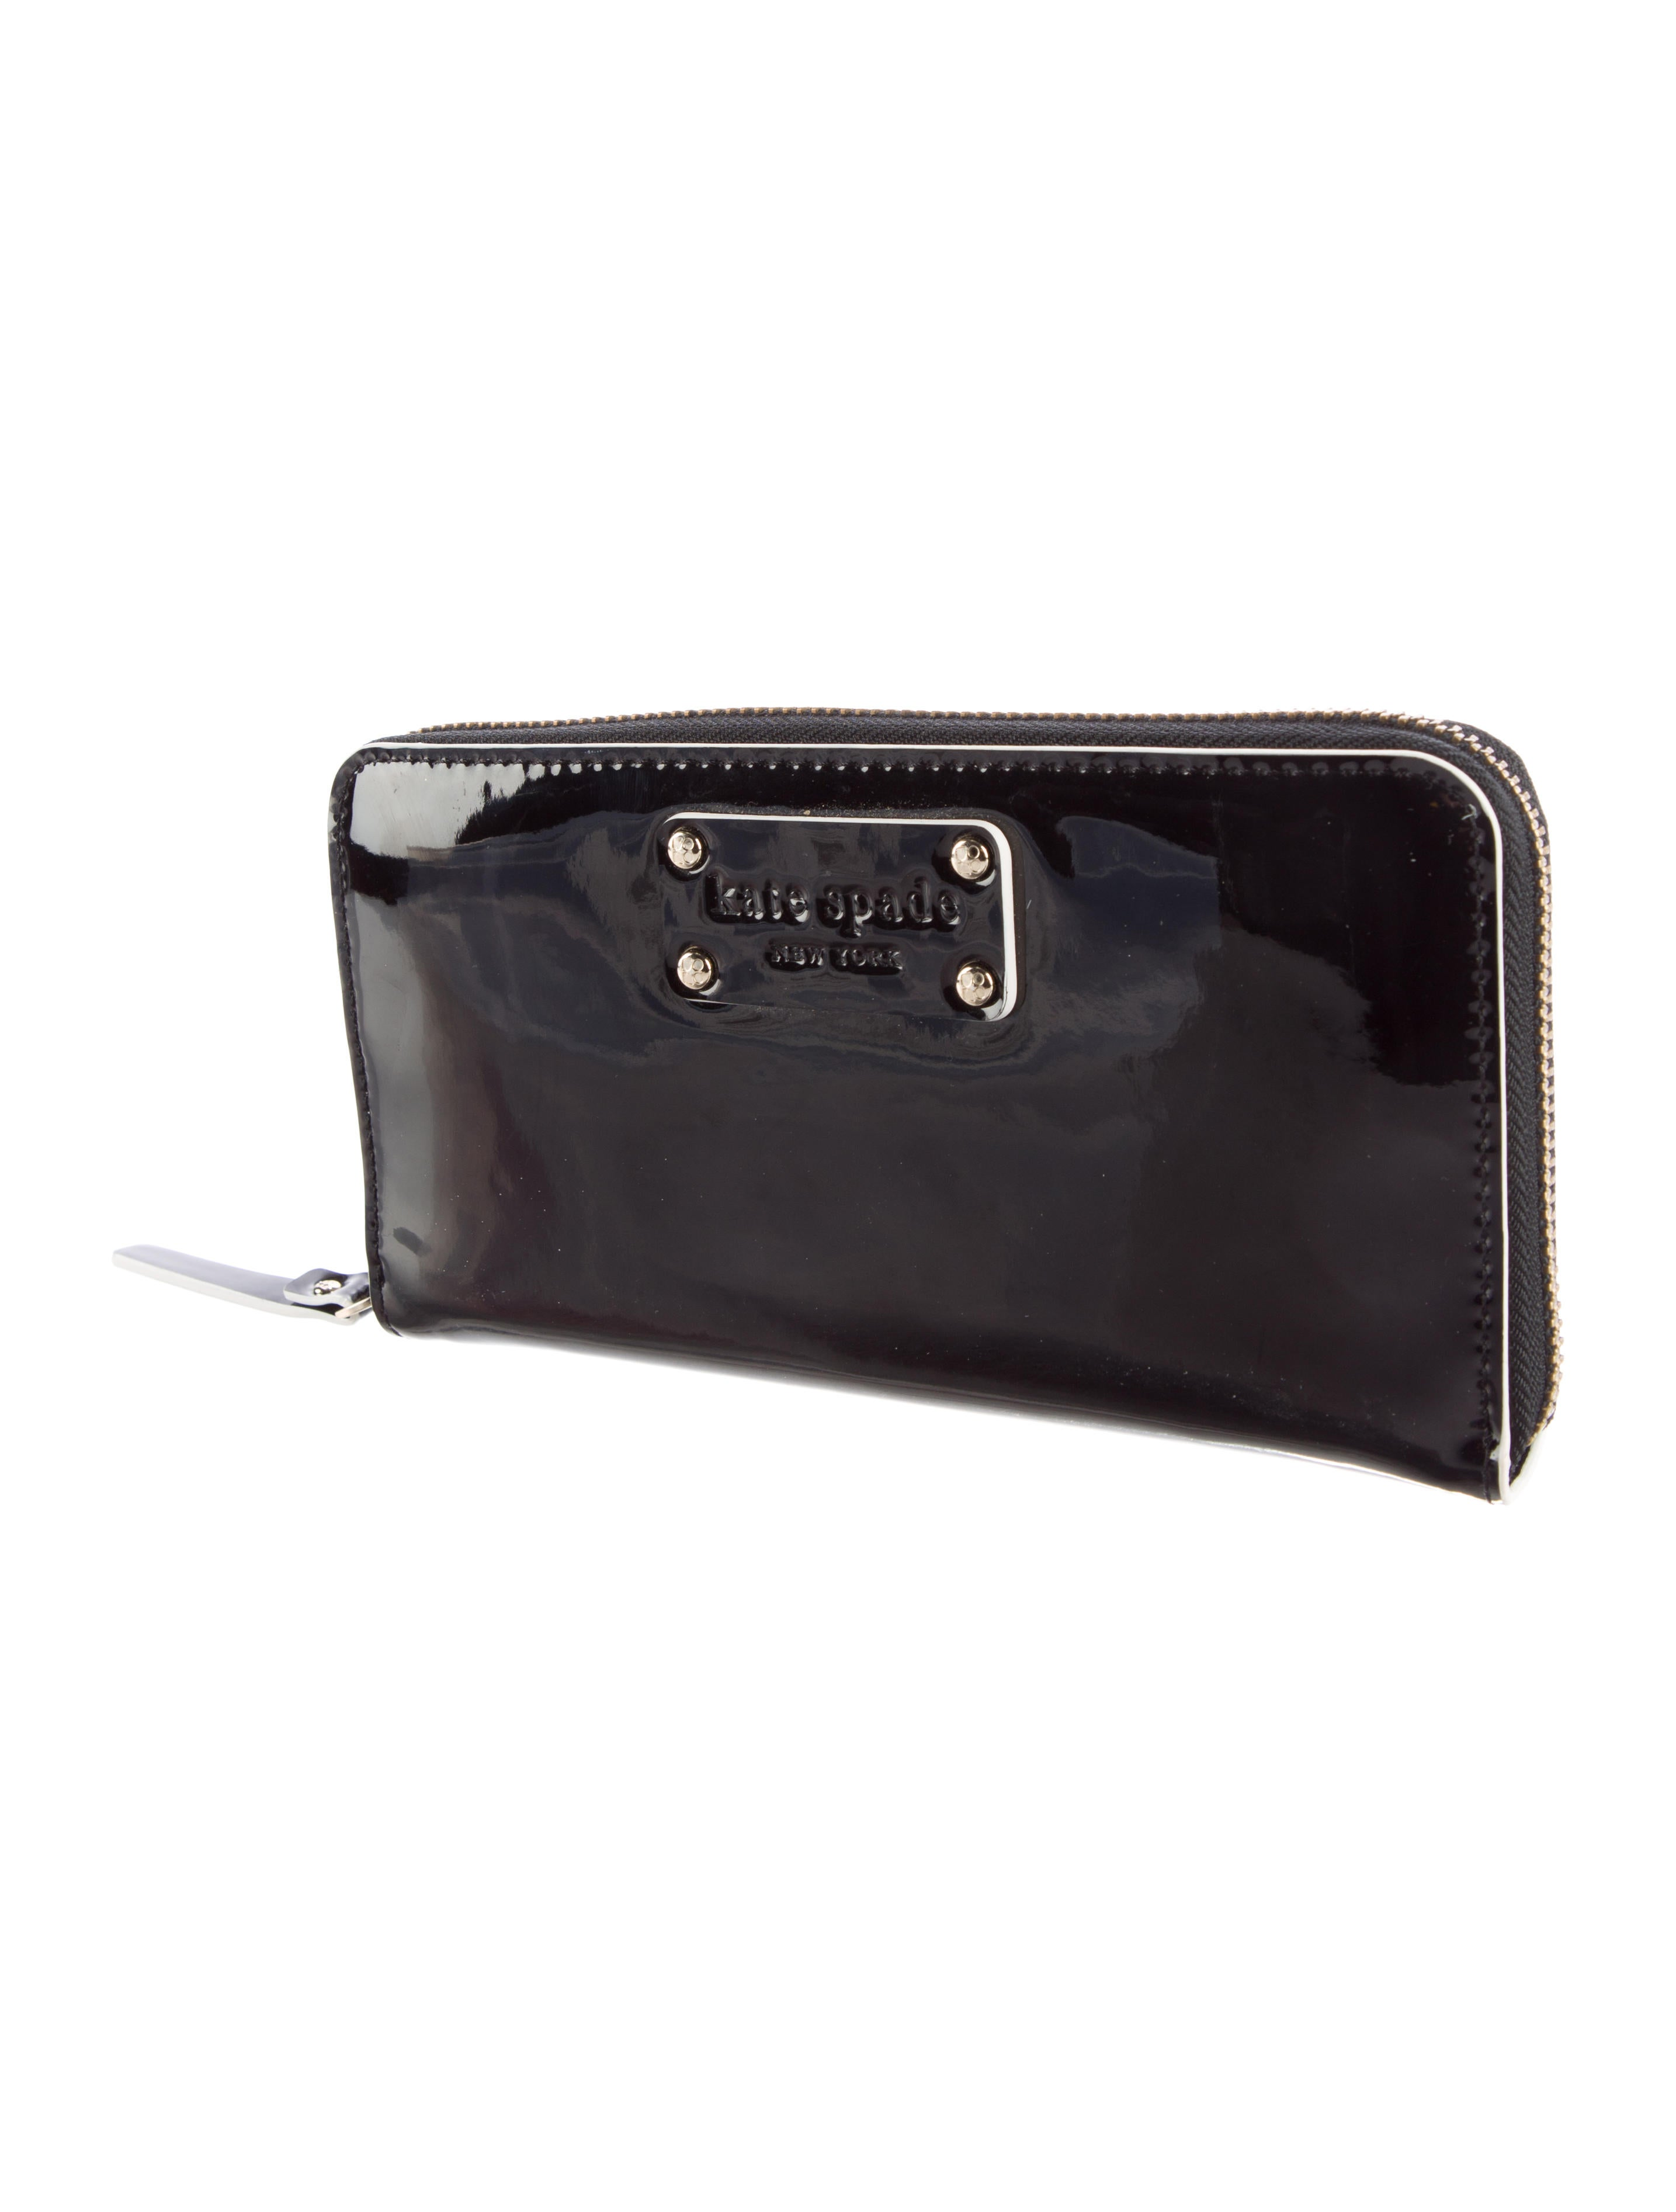 Kate Spade New York Patent Leather Wallet Accessories